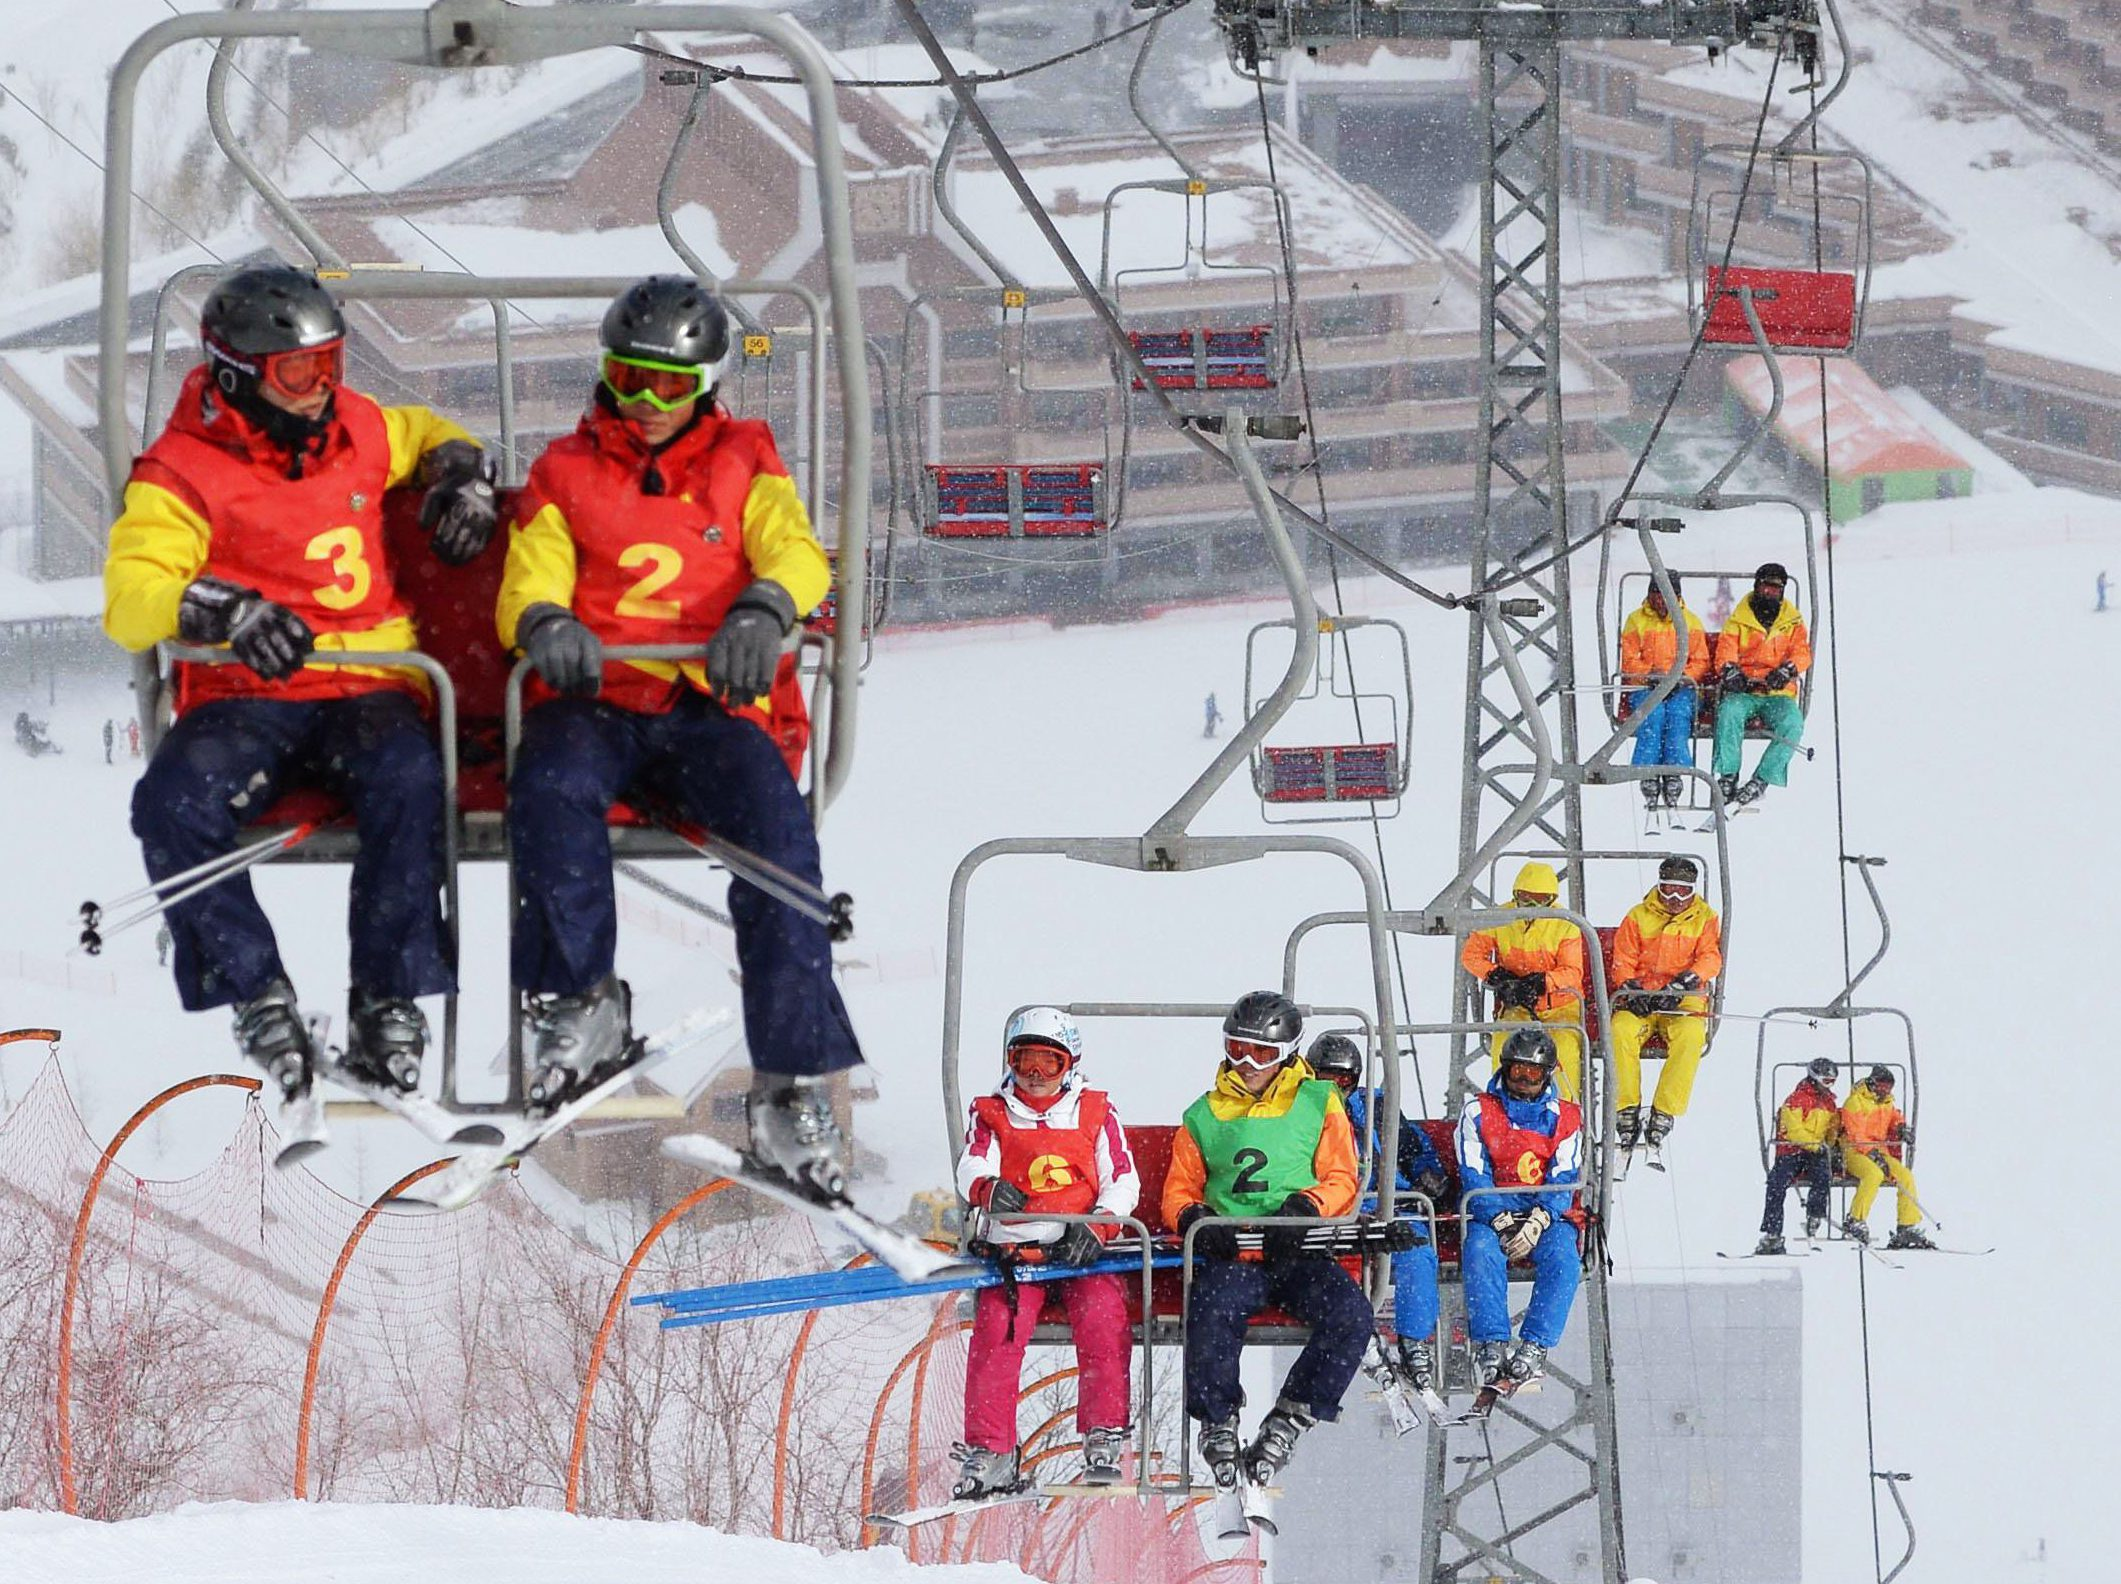 North Korea to build second ski resort as Winter Olympics approach